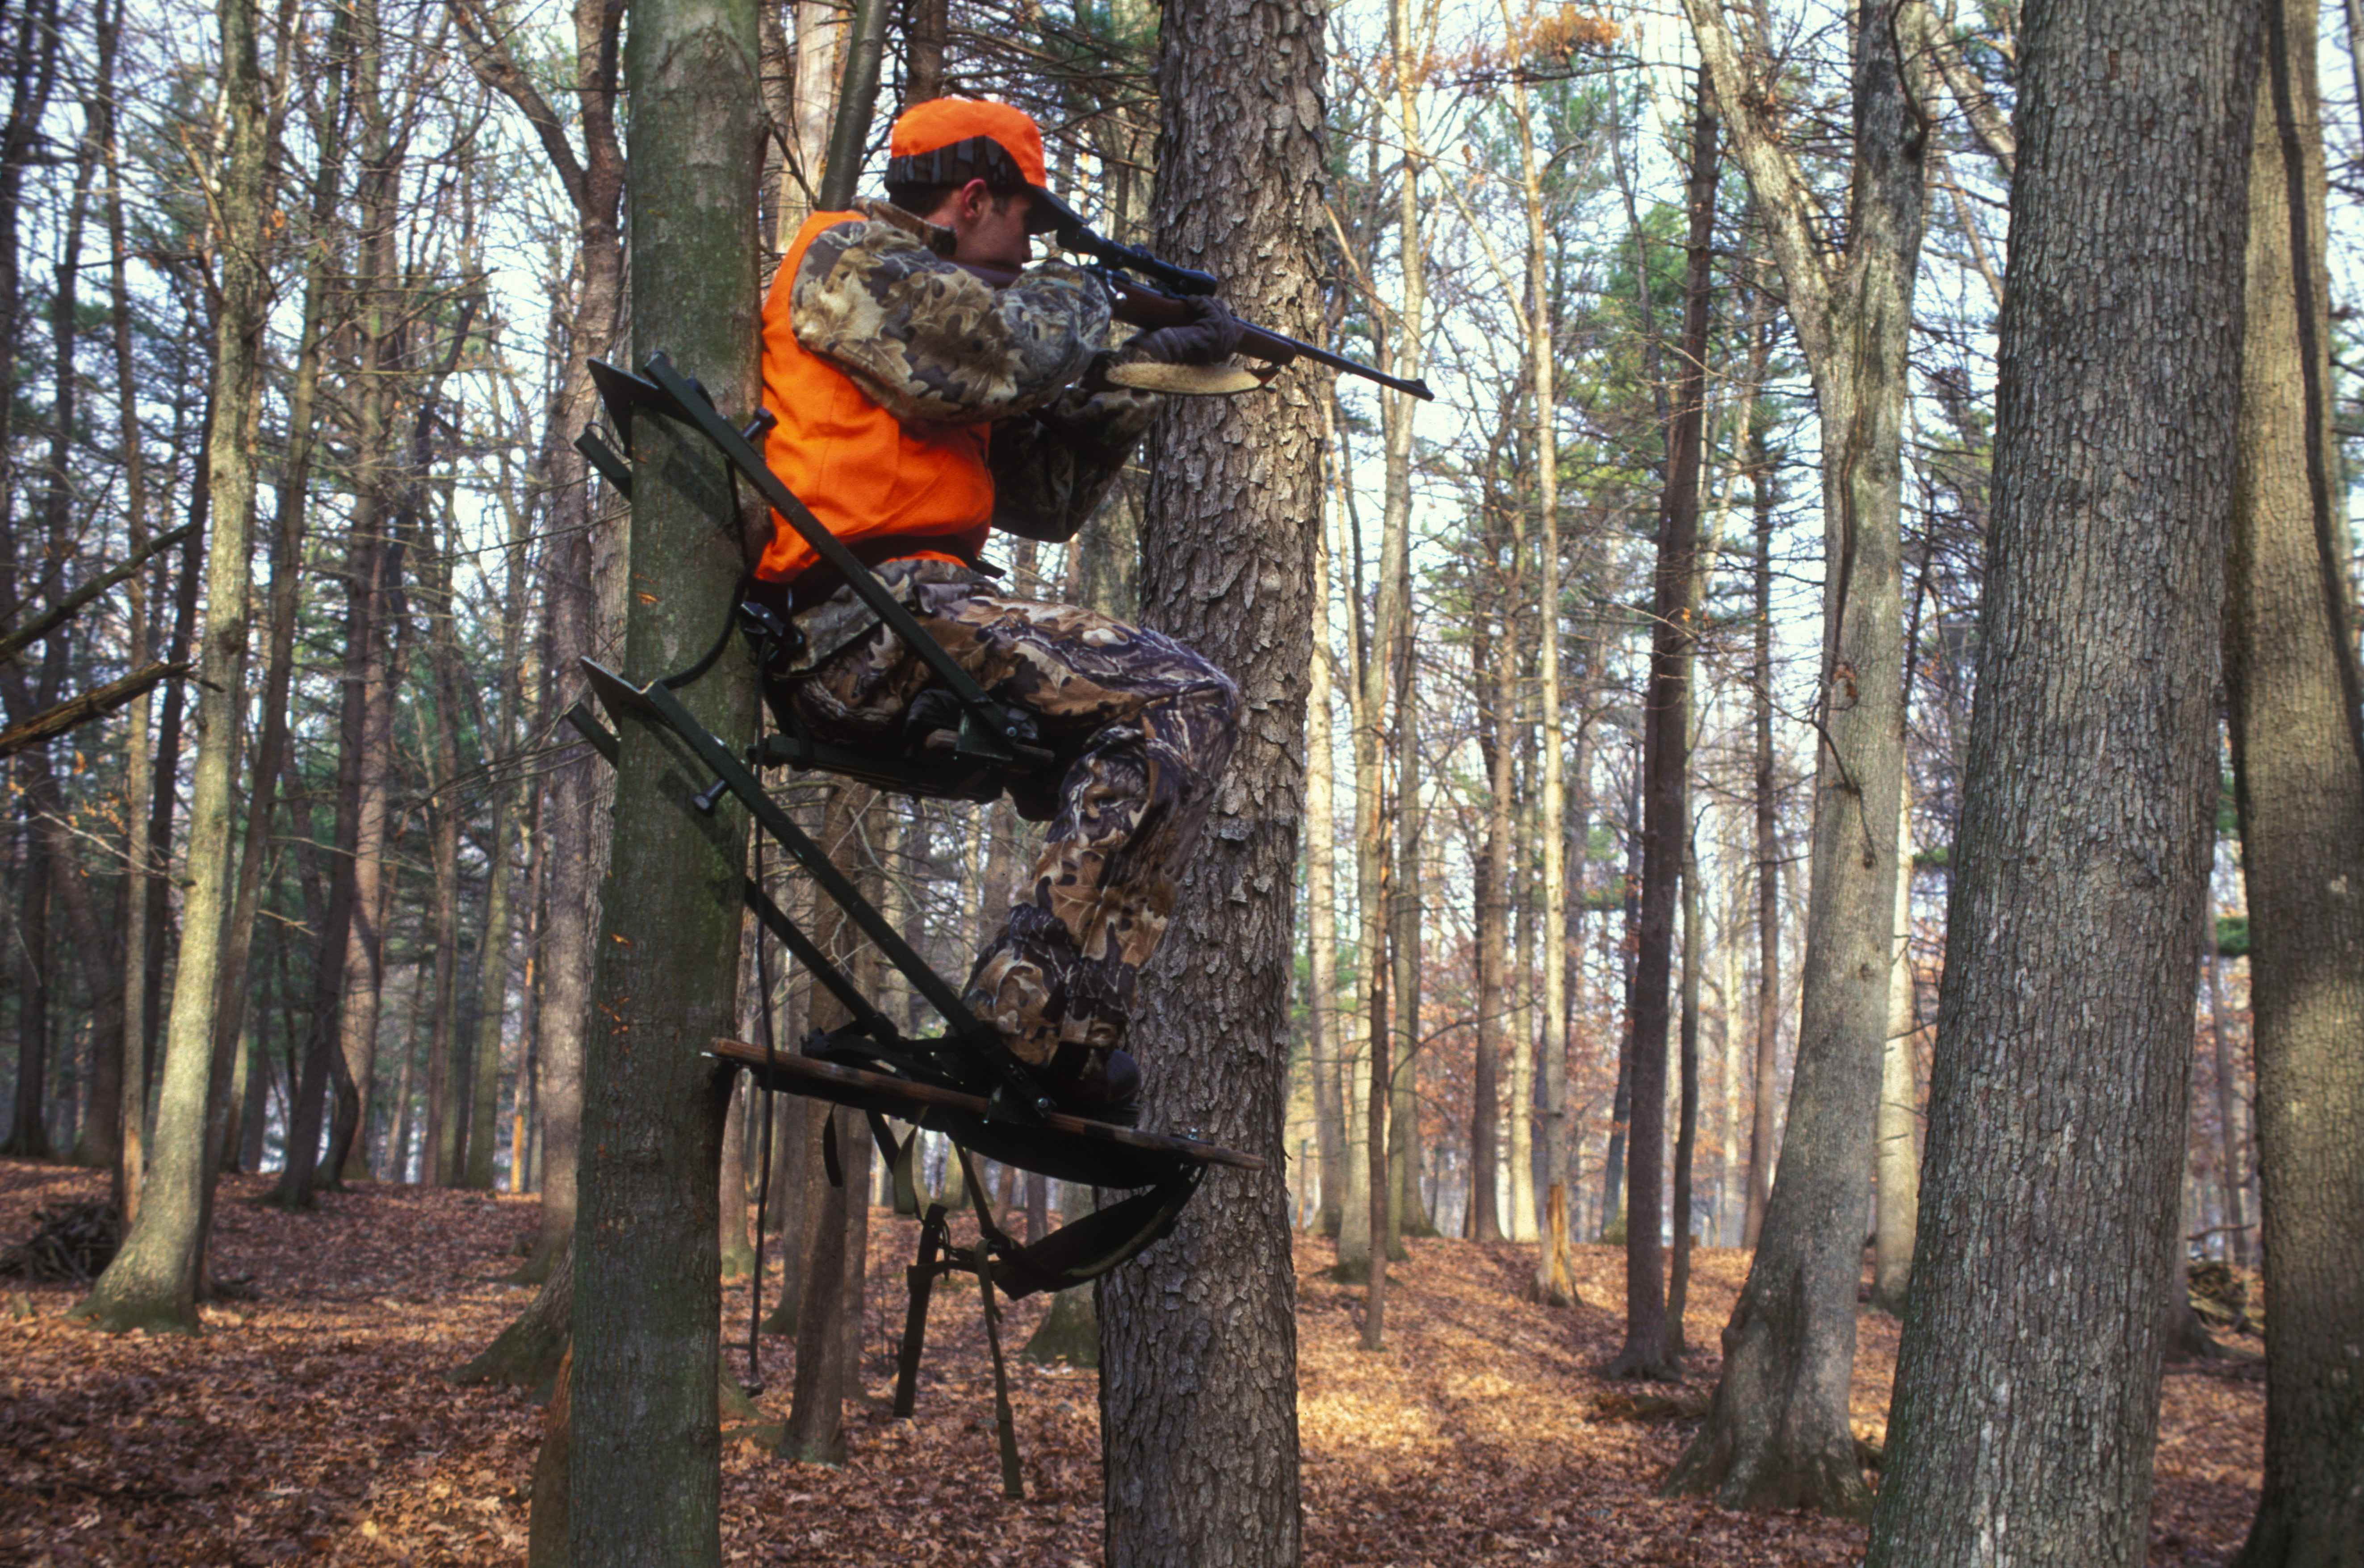 Bow Hunting Near Bedding Areas